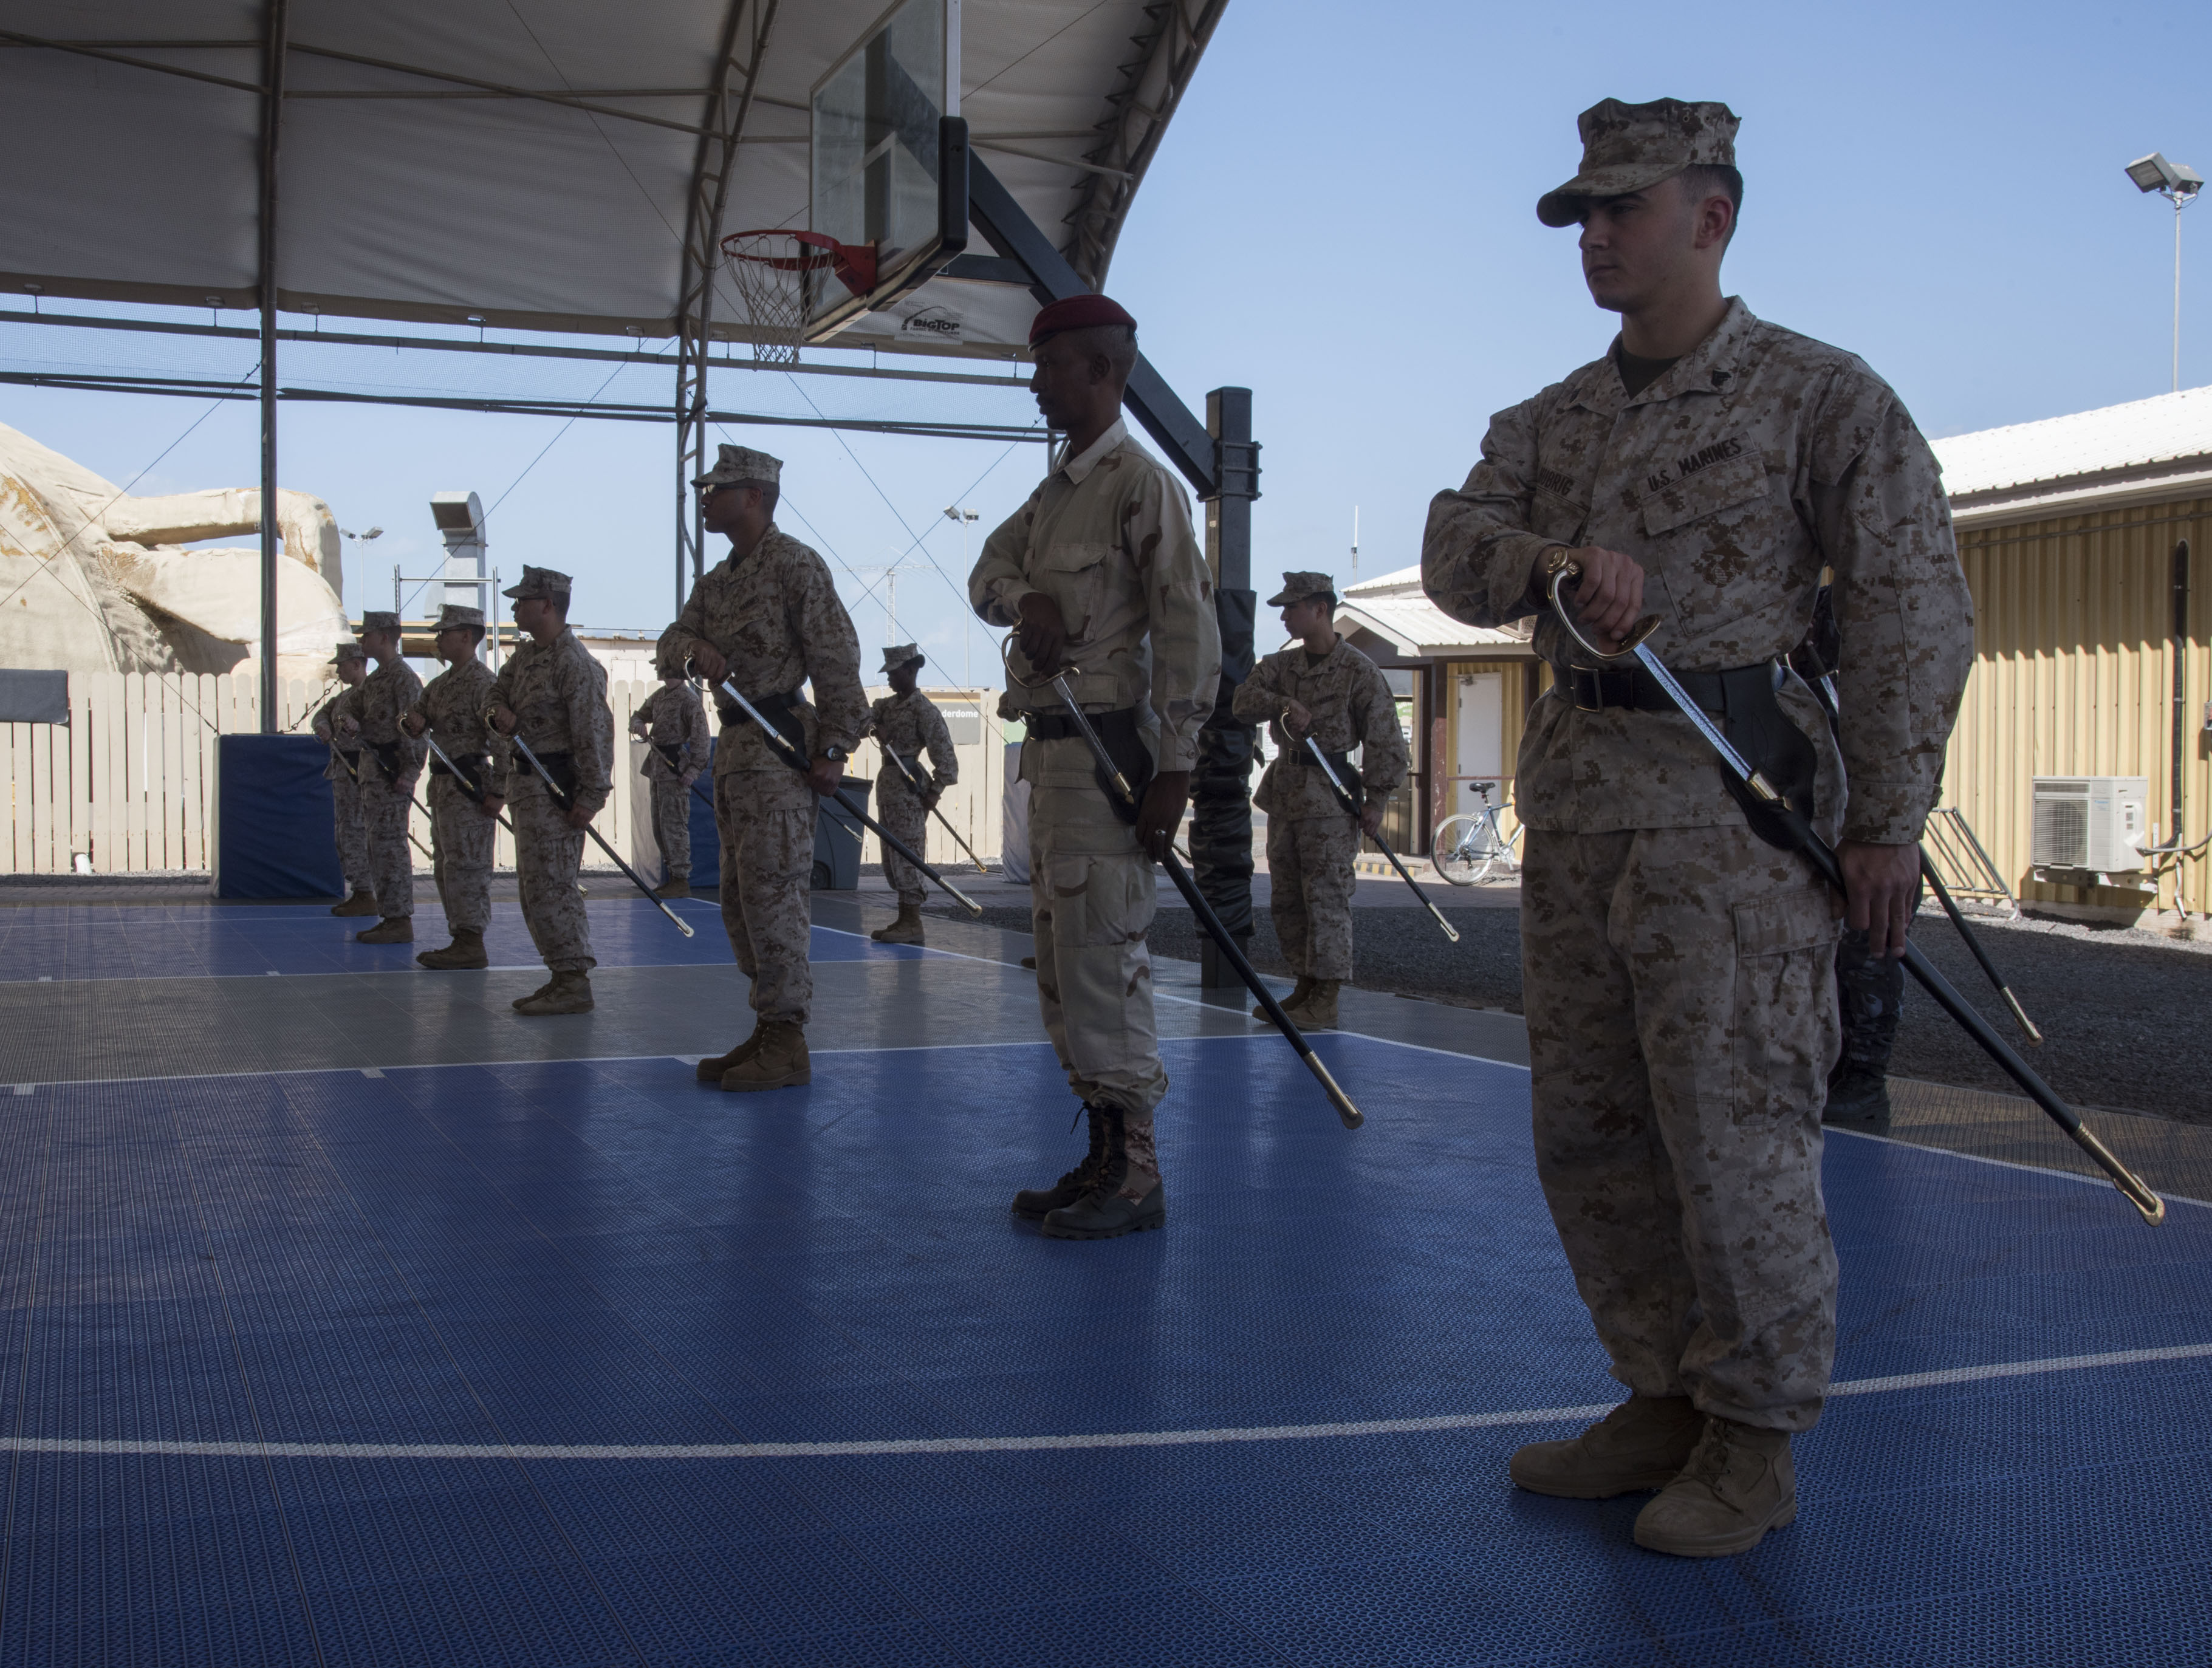 U.S. Marines and Djiboutian military members prepare for the order to present their swords during sword and guidon training as part of a Joint Corporals Course hosted by Combined Joint Task Force – Horn of Africa at Camp Lemonnier, Jan. 12, 2018. The Joint Corporals Course is designed to provide junior service members with the knowledge and skills necessary to assume leadership roles of greater responsibility as a non-commissioned officer, as well as strengthen bonds between participating militaries. (U.S. Air National Guard photo by Staff Sgt. Allyson L. Manners)